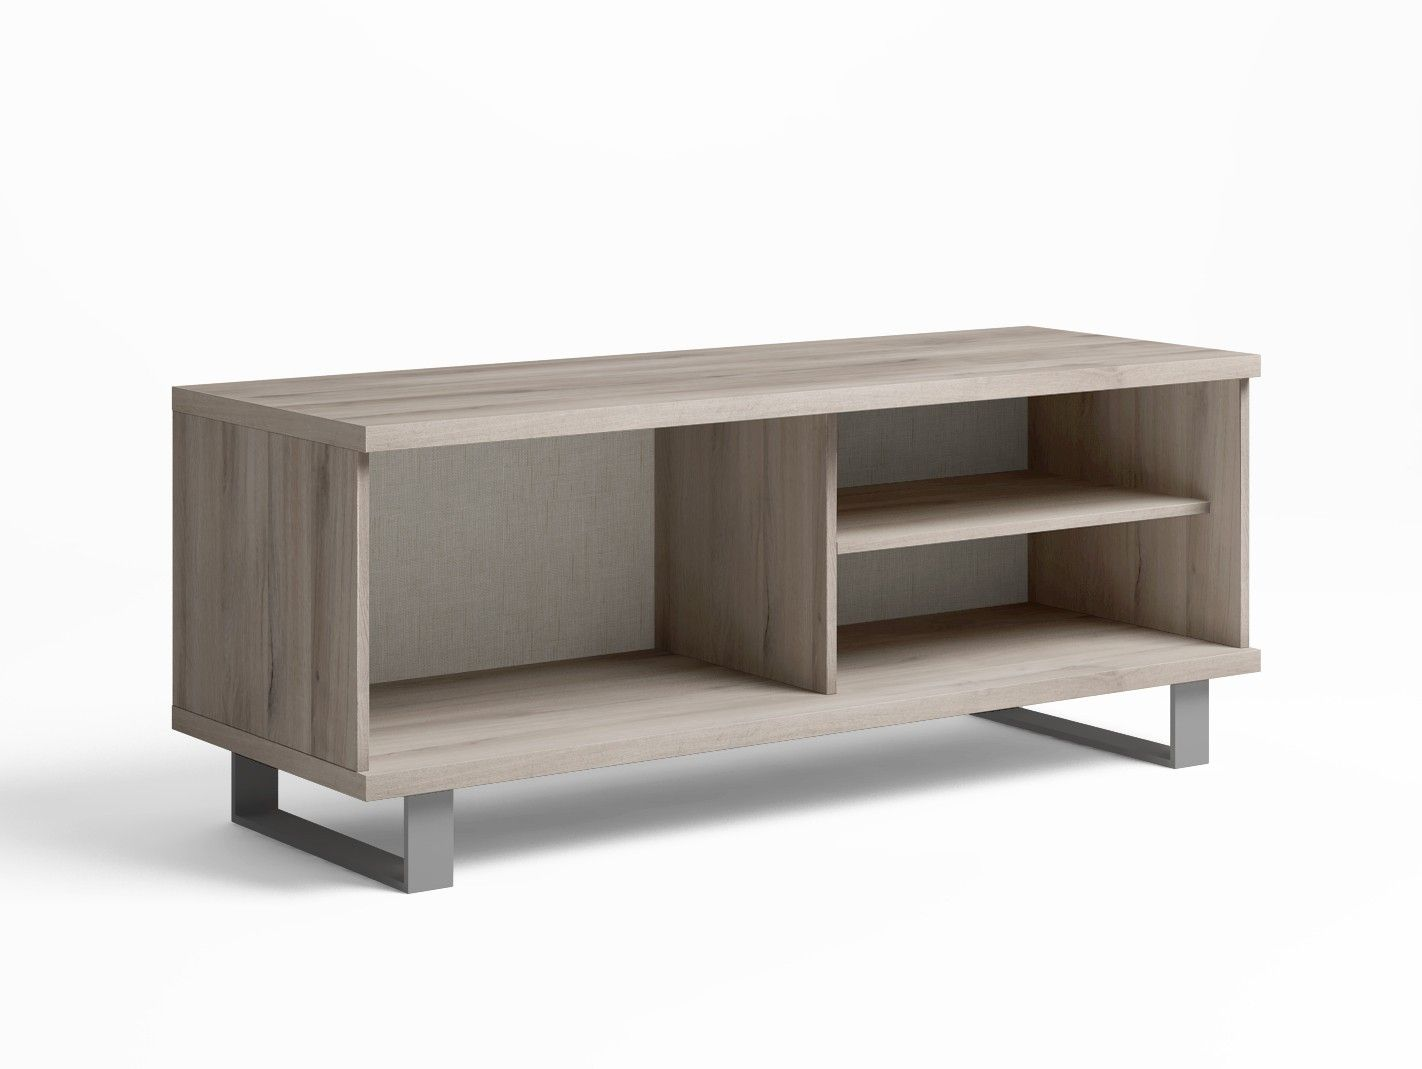 Muebles salon yecla 20170906121627 for Muebles modulares salon modernos